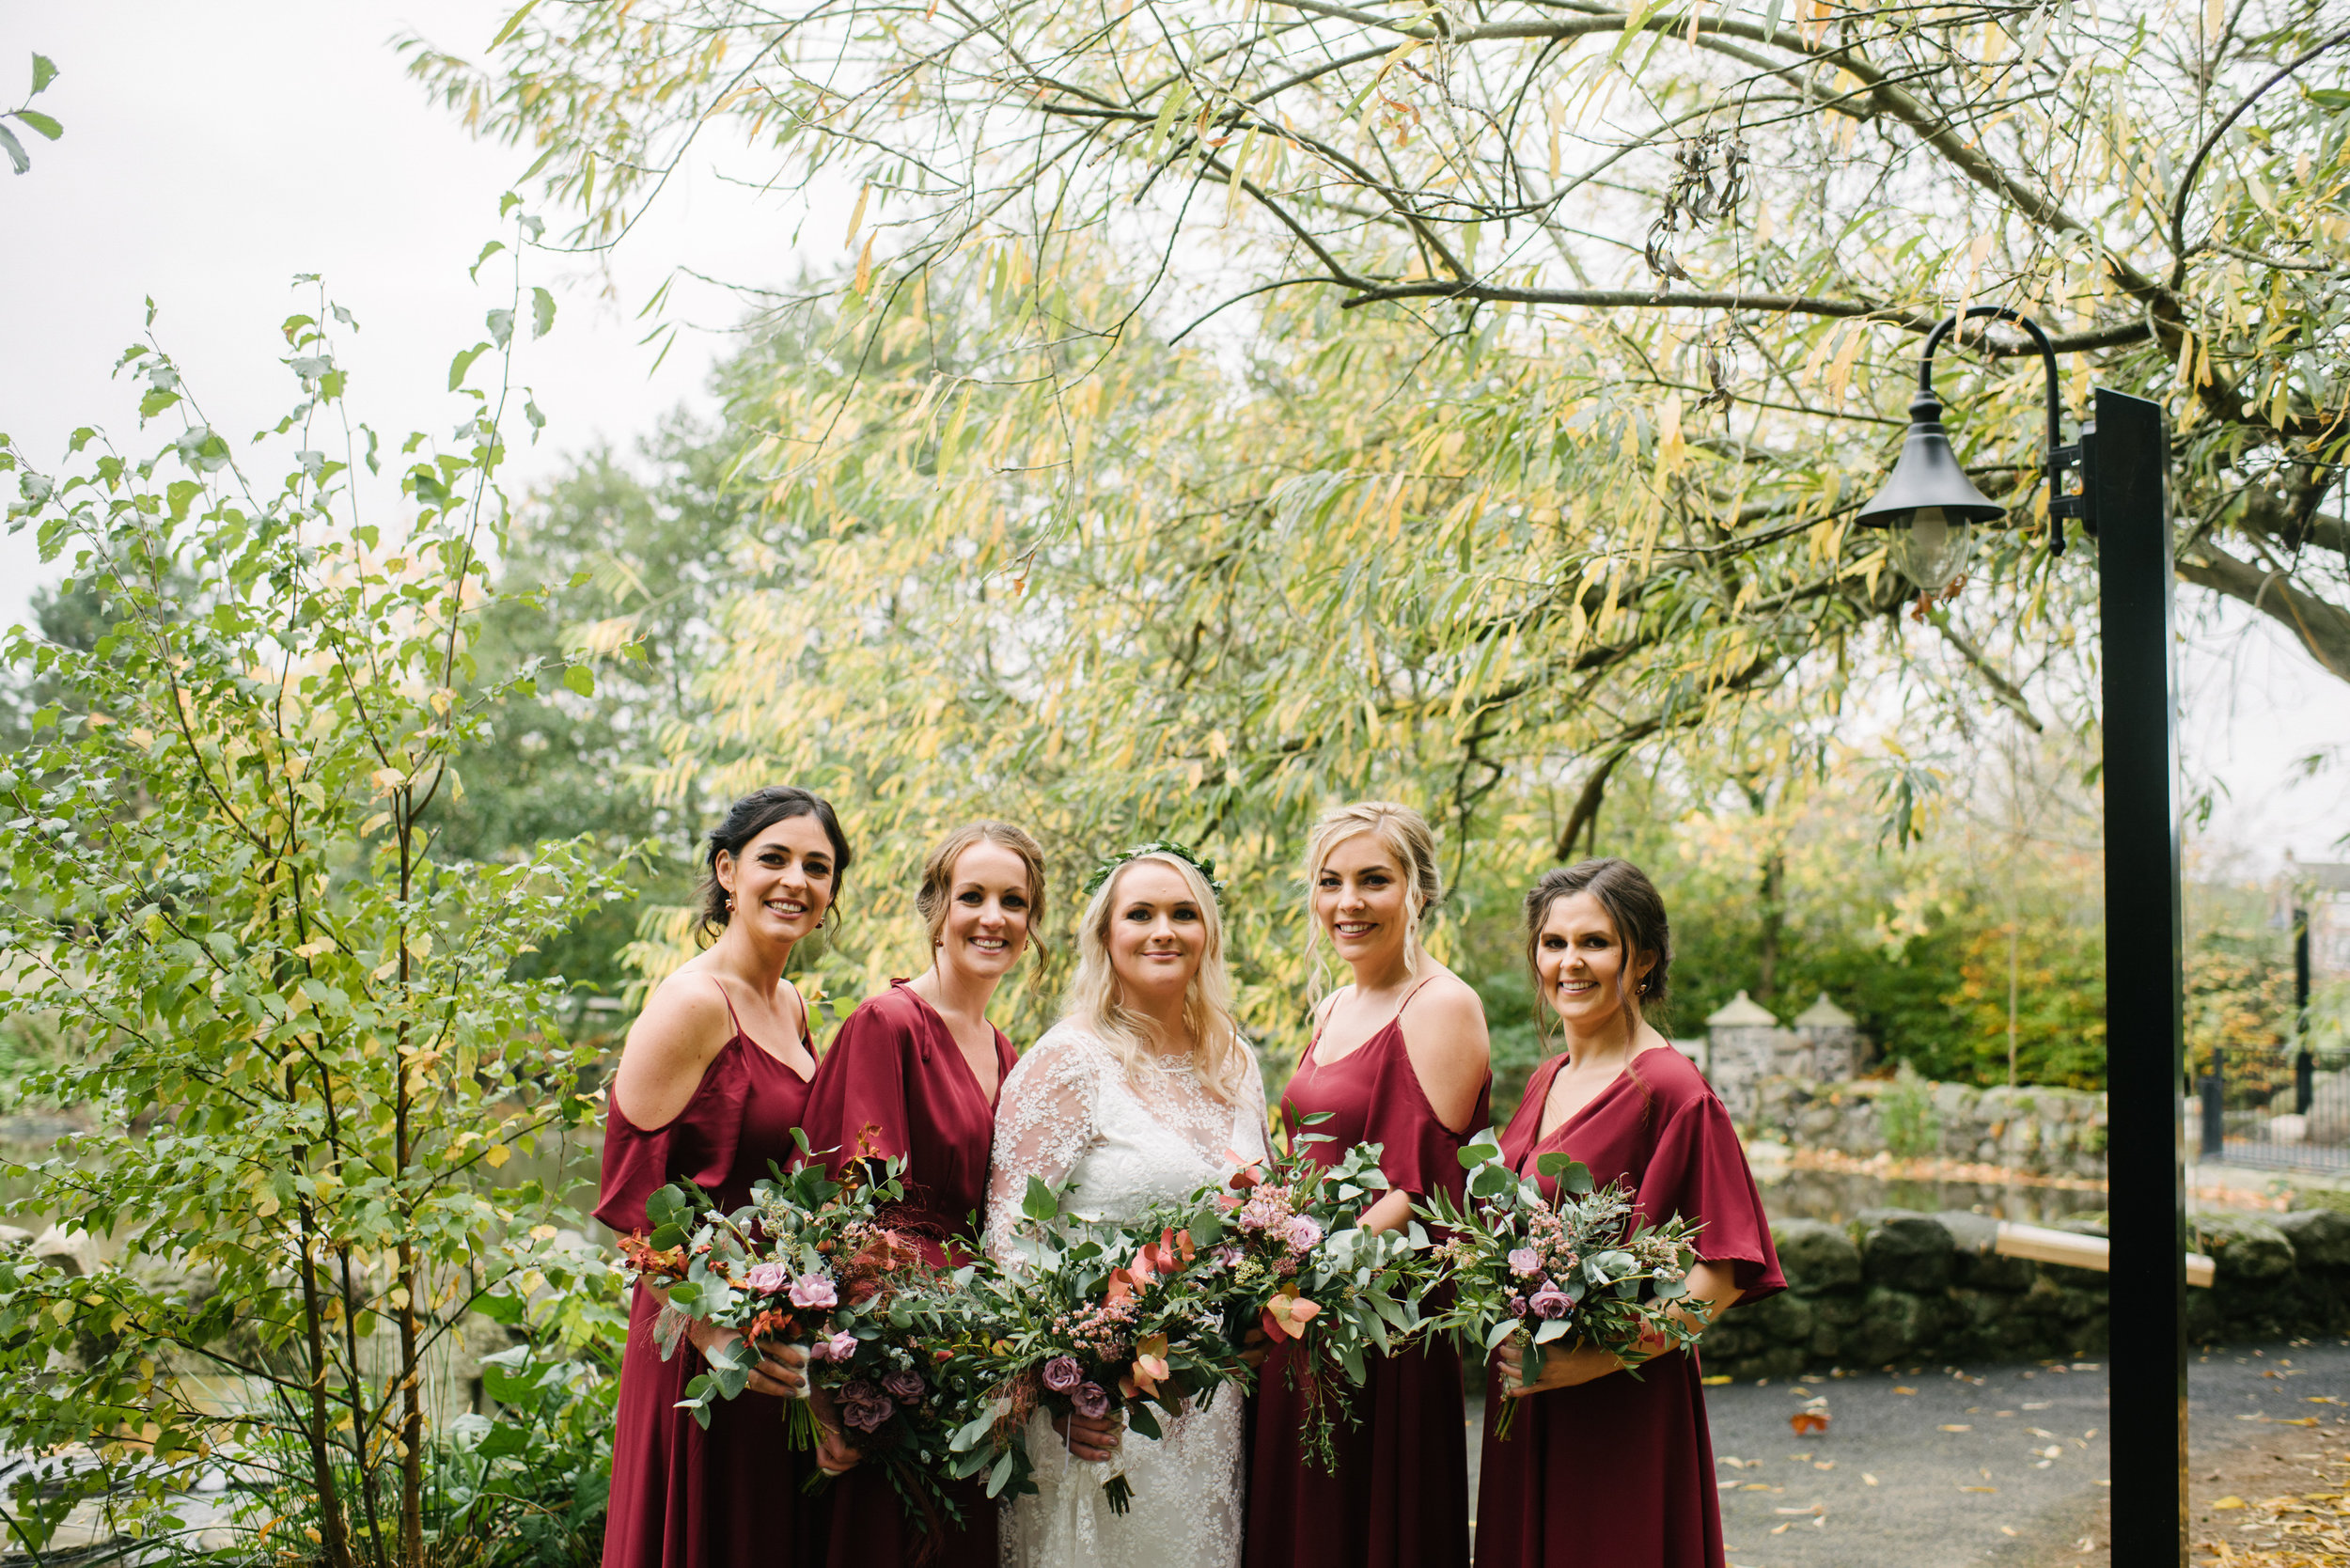 RERWITTEN BRIDESMAIDS DRESSES IRELAND